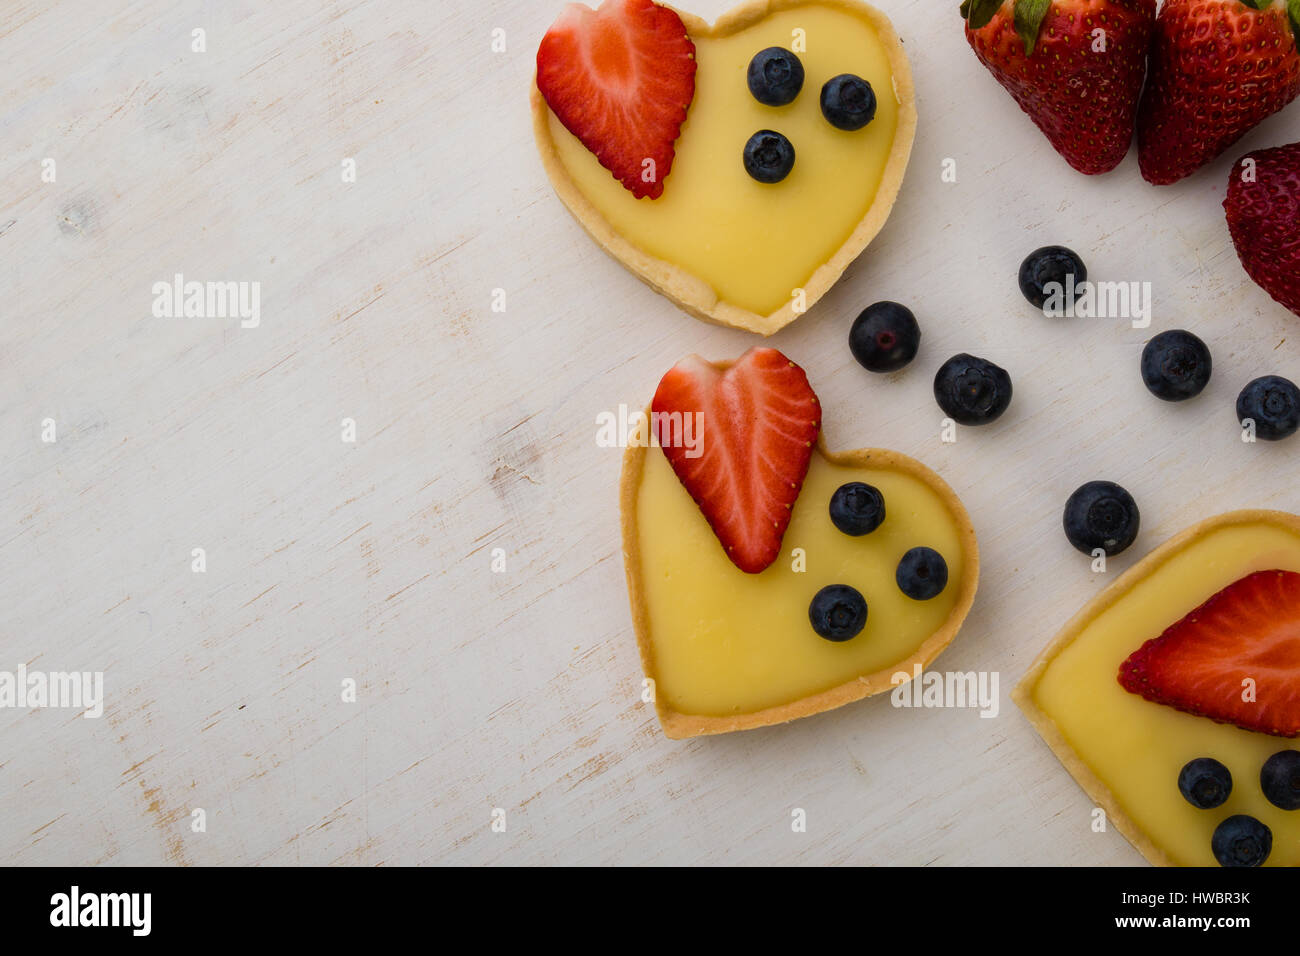 heart shape vanilla tart with strawberry and blueberry on white table - Stock Image